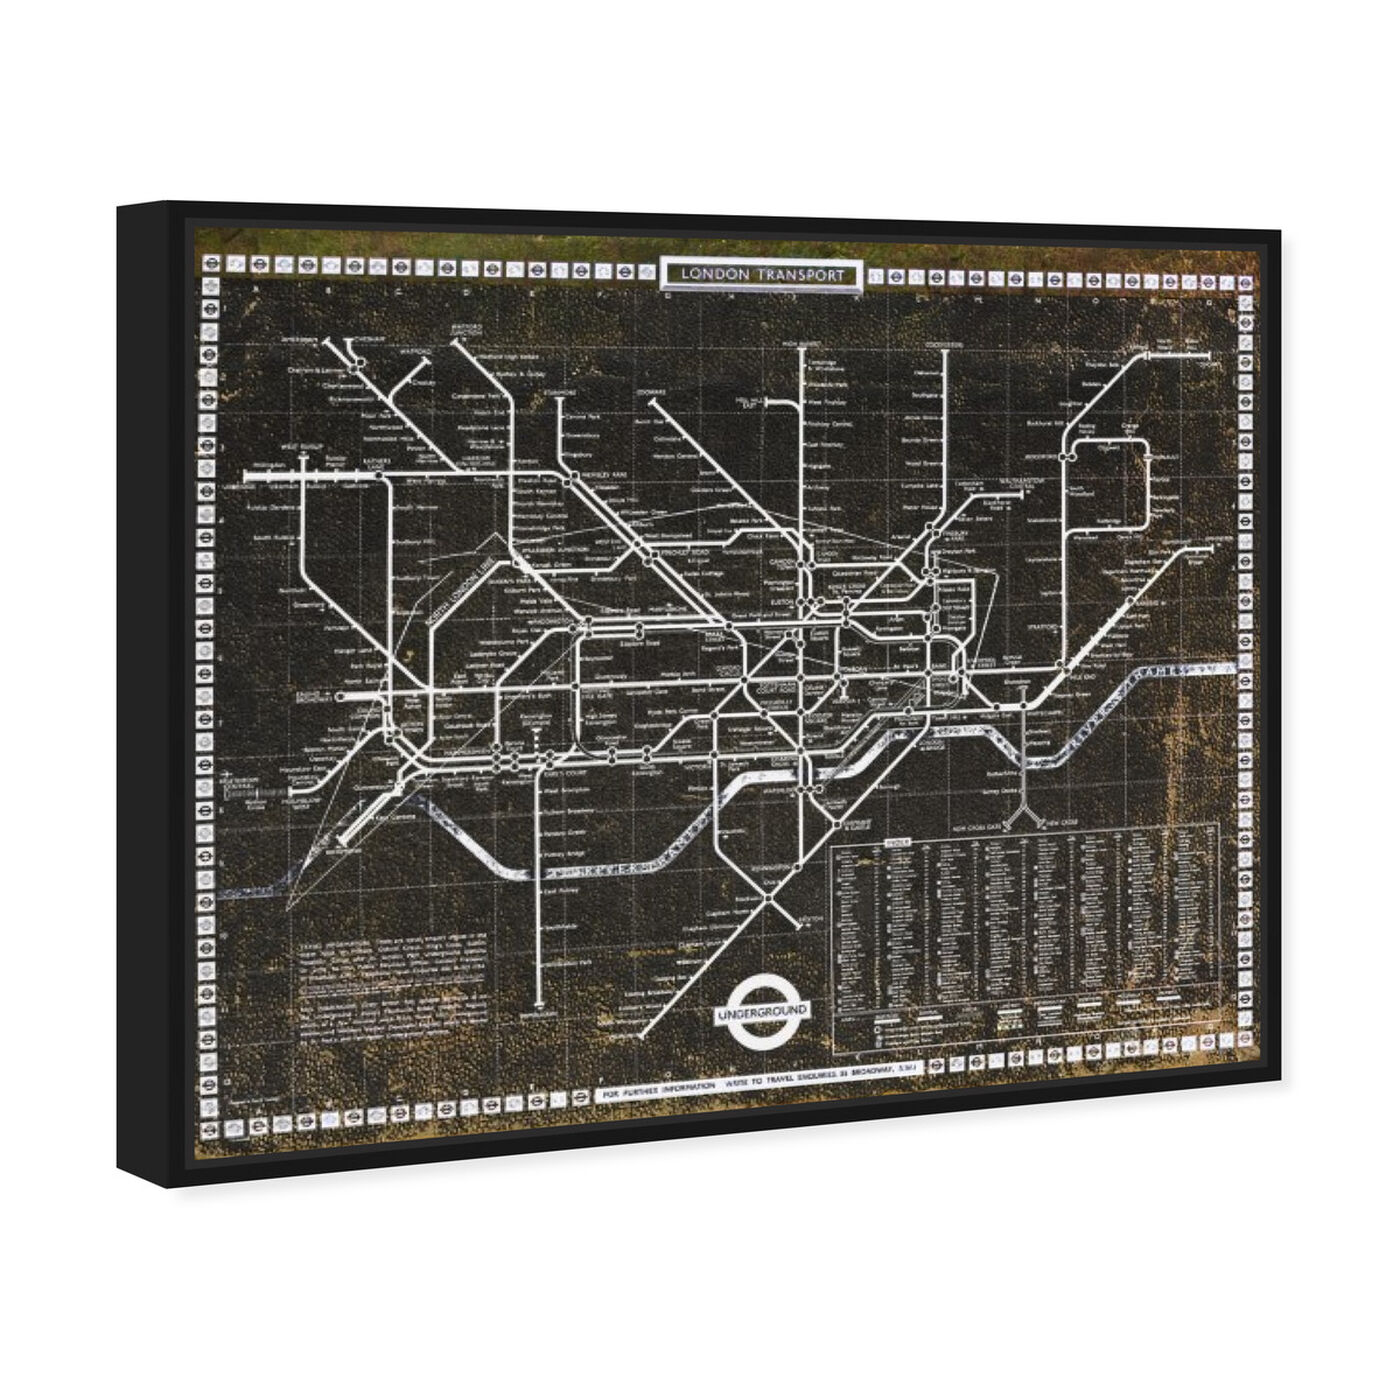 Angled view of London Tube 1972 featuring maps and flags and european cities flags art.